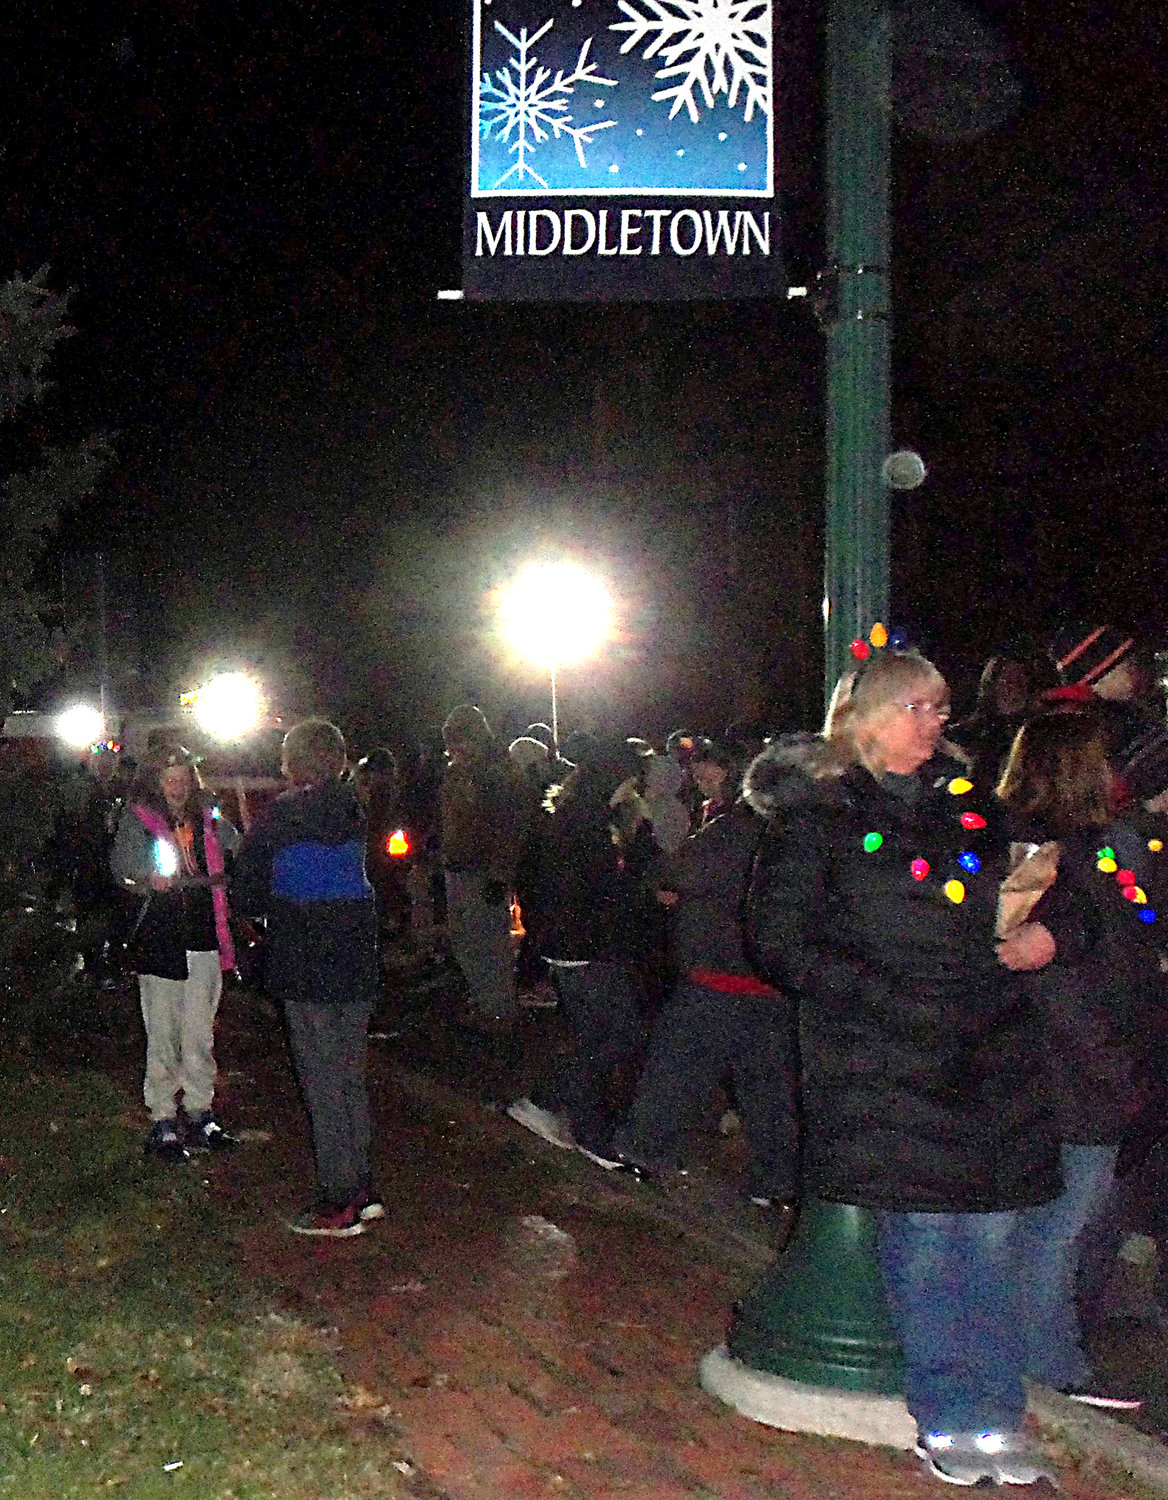 A crowd eagerly awaits the lighting of Middletown borough's Christmas tree Saturday, Nov. 30, at St. Peter's Kierch..